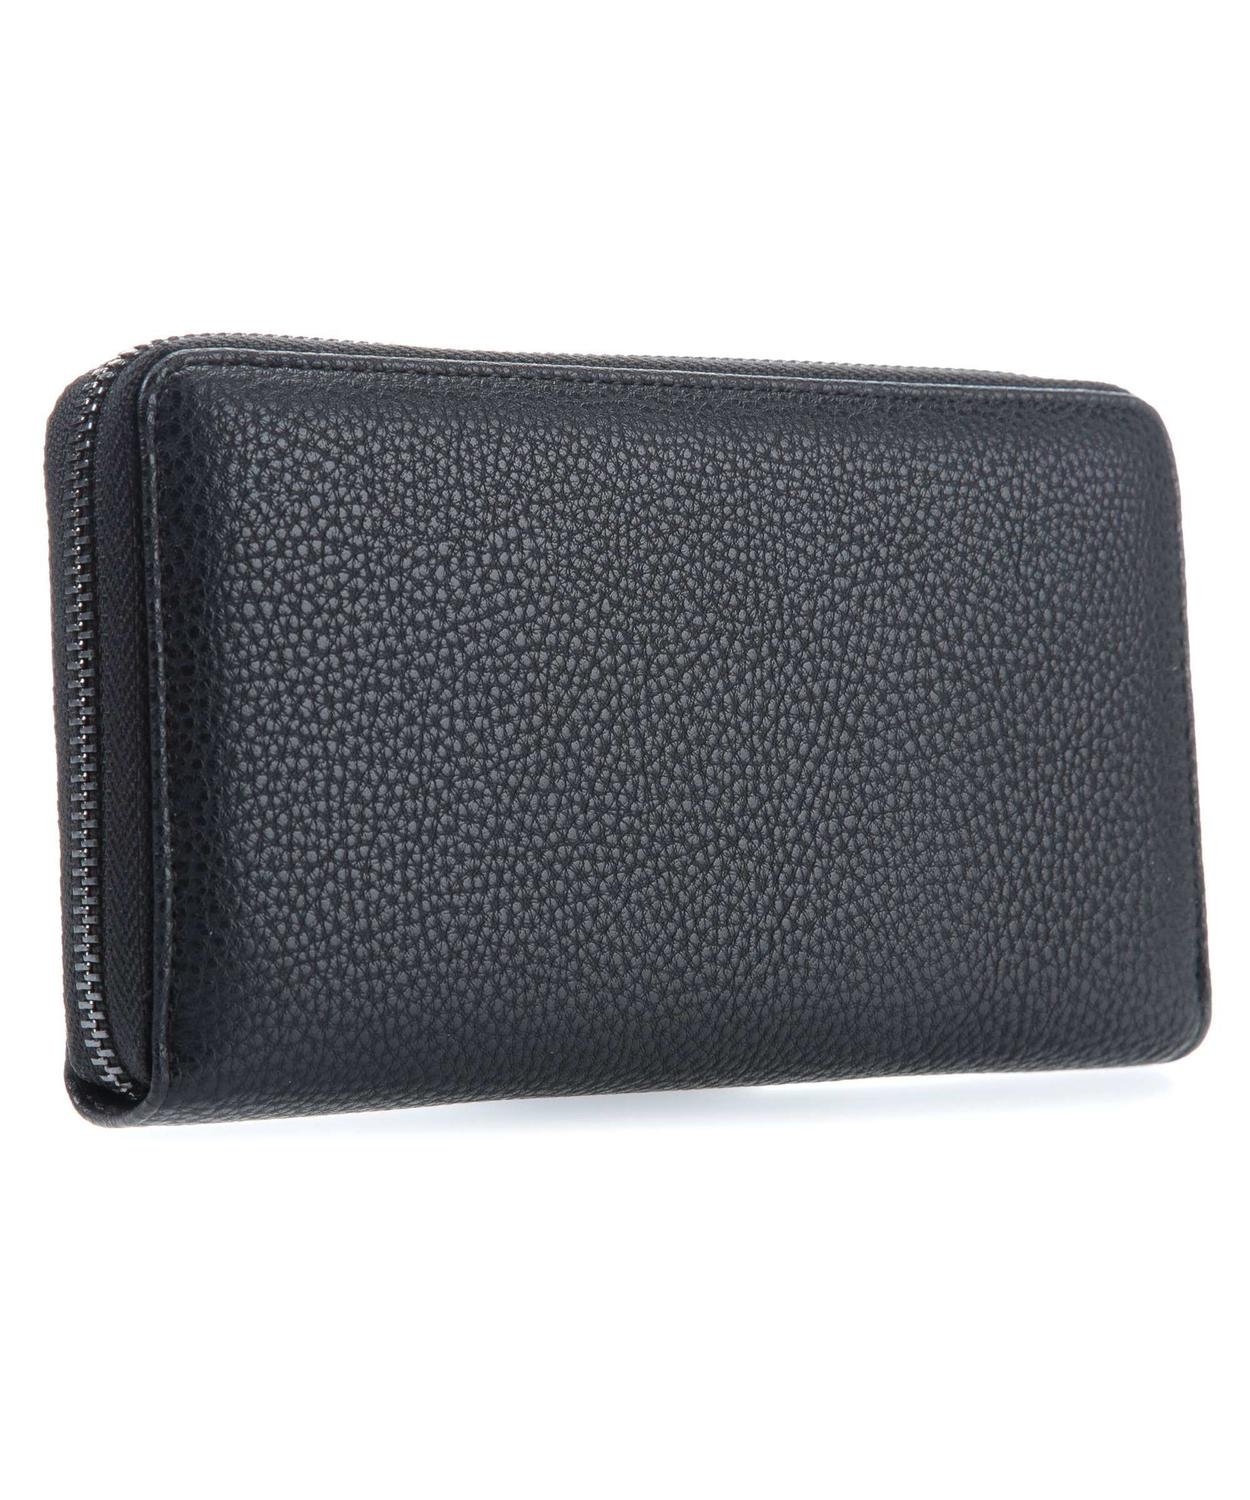 Amazon.com  Trussardi Jeans NEW Womens Studded Wallet Zip Around  Fashion  Concerto 4cb0fc2c51